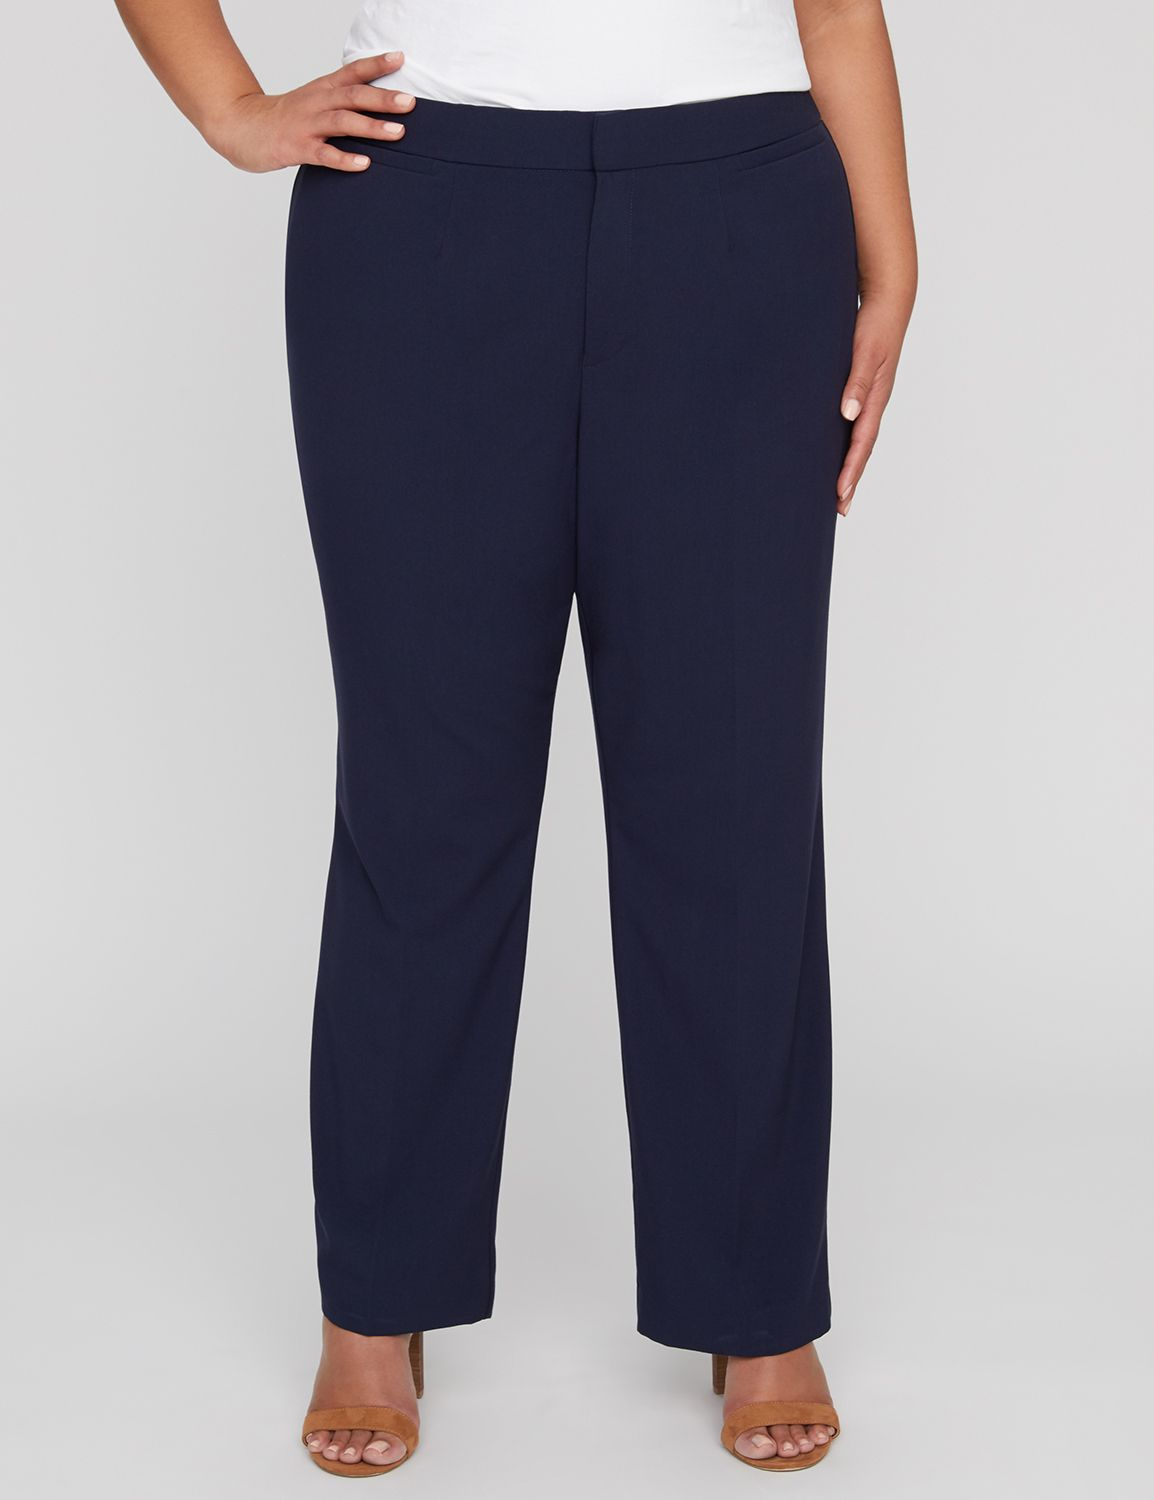 Right Fit Pant (Curvy) Right Fit Pant (Curvy) MP-300043638